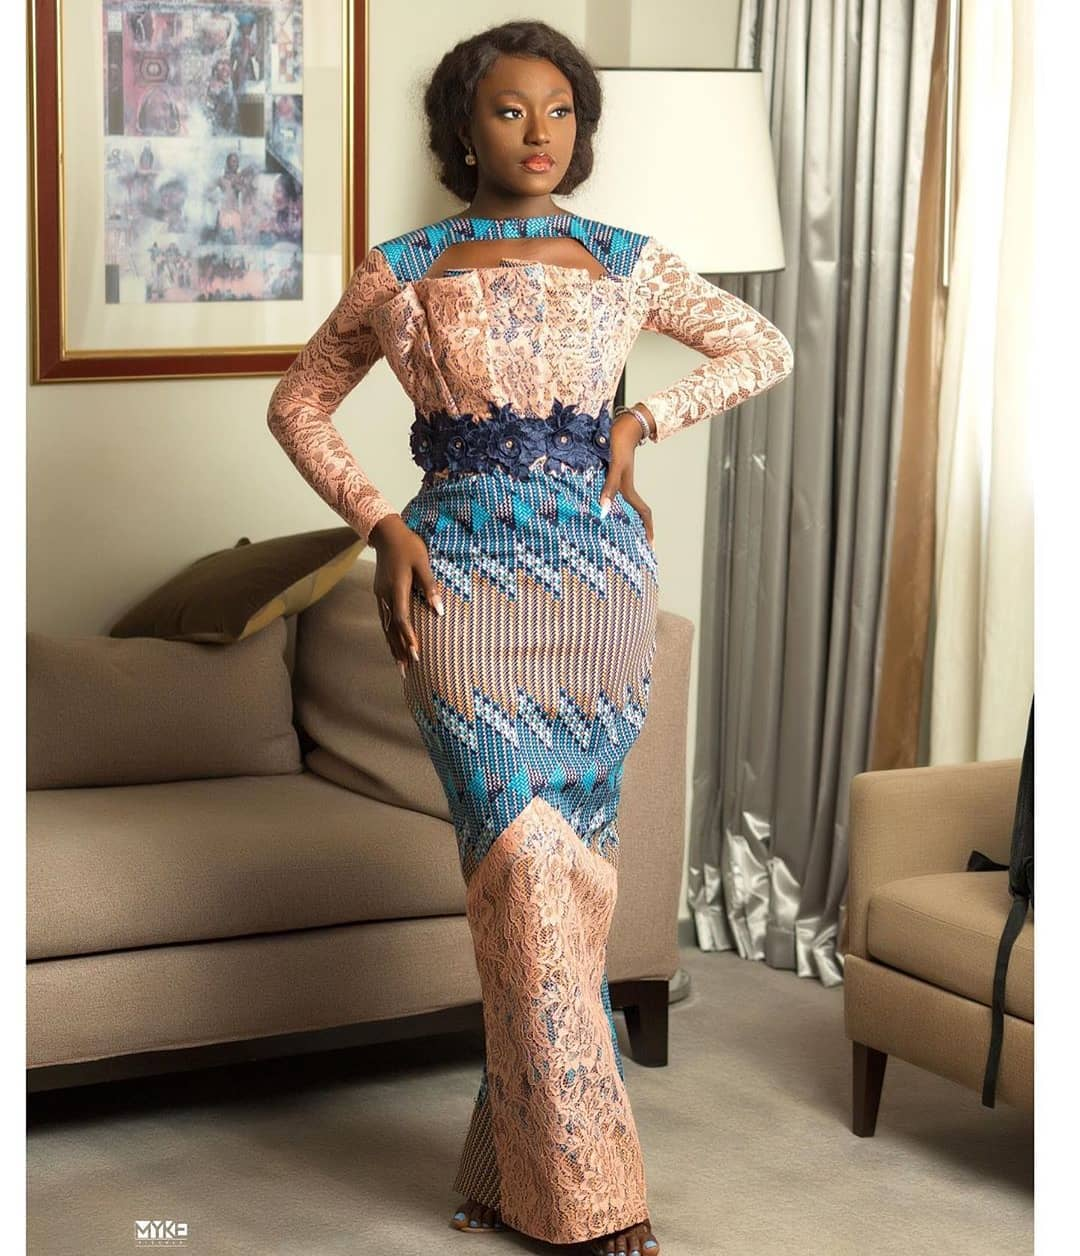 NEW FASHION STYLE, TRENDY AFRICAN DRESSES STYLES LOOKS NICE 2